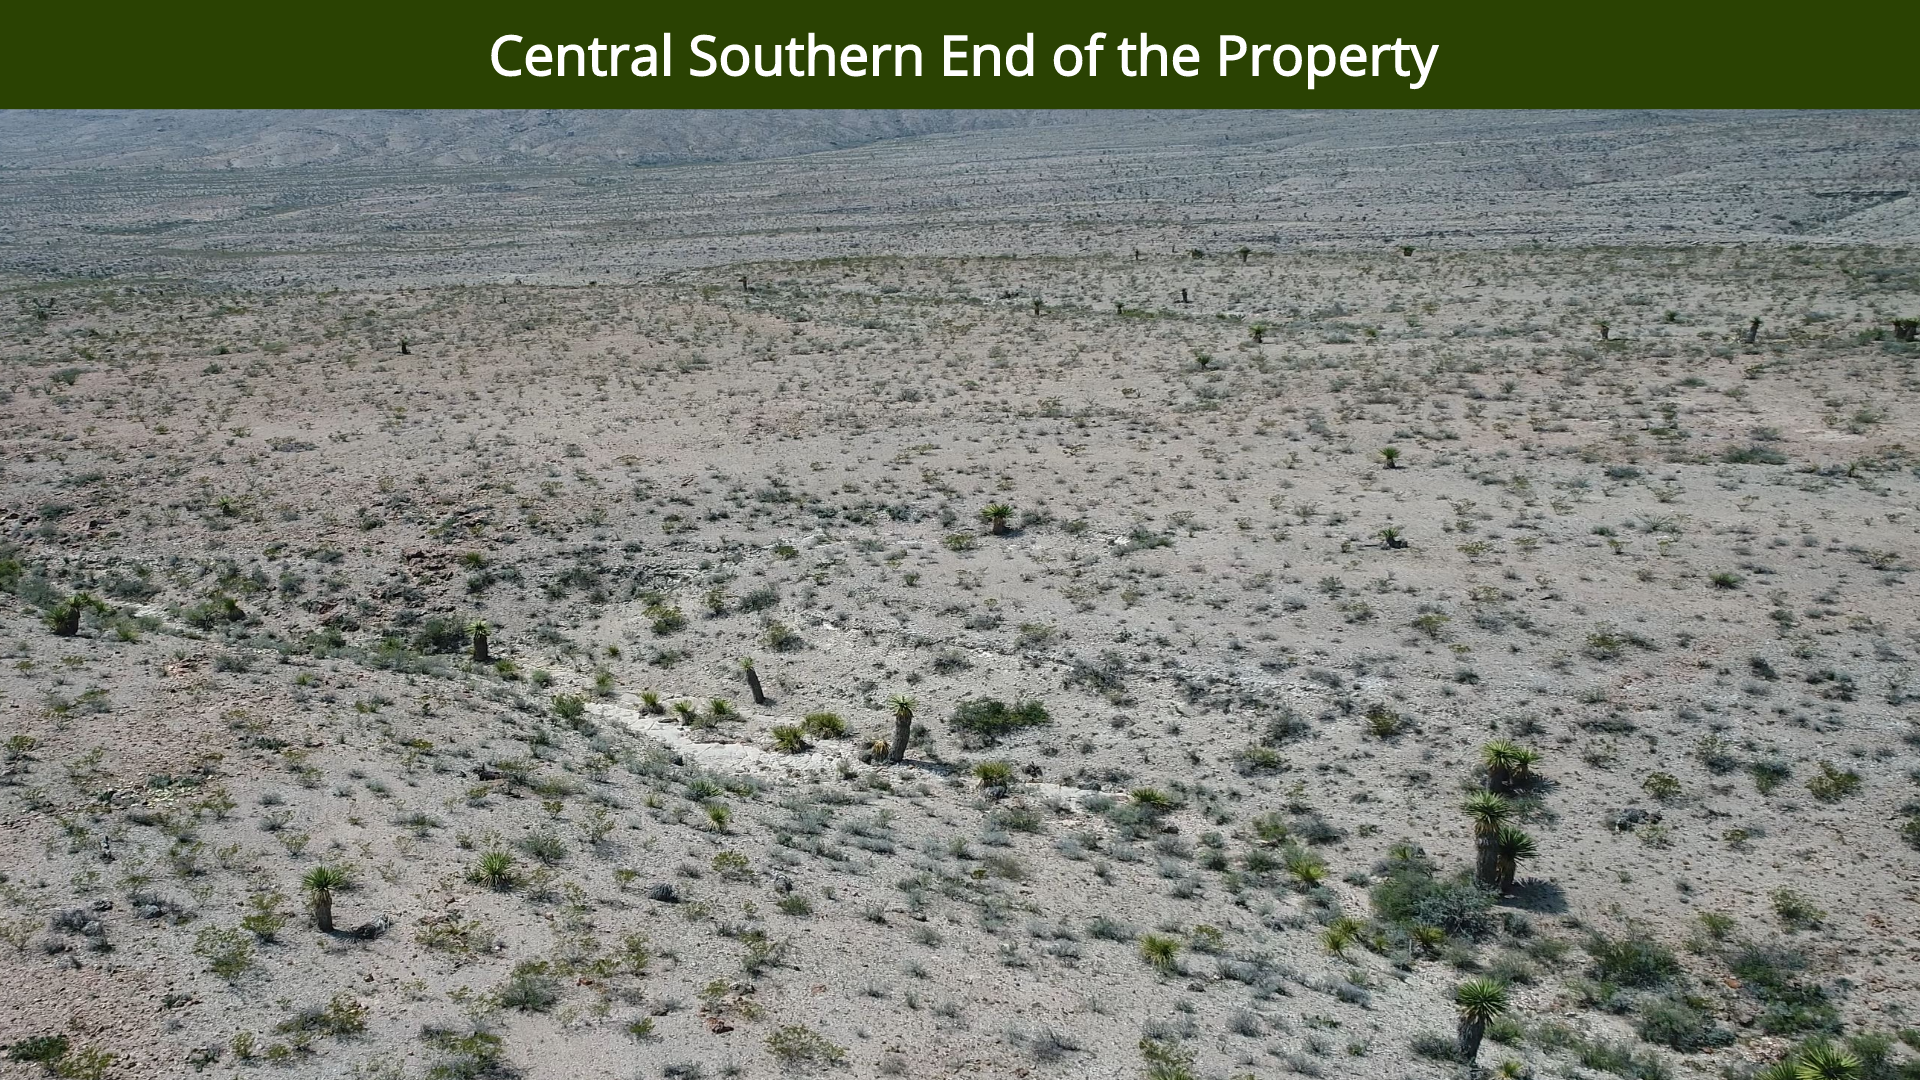 Central Southern End of the Property